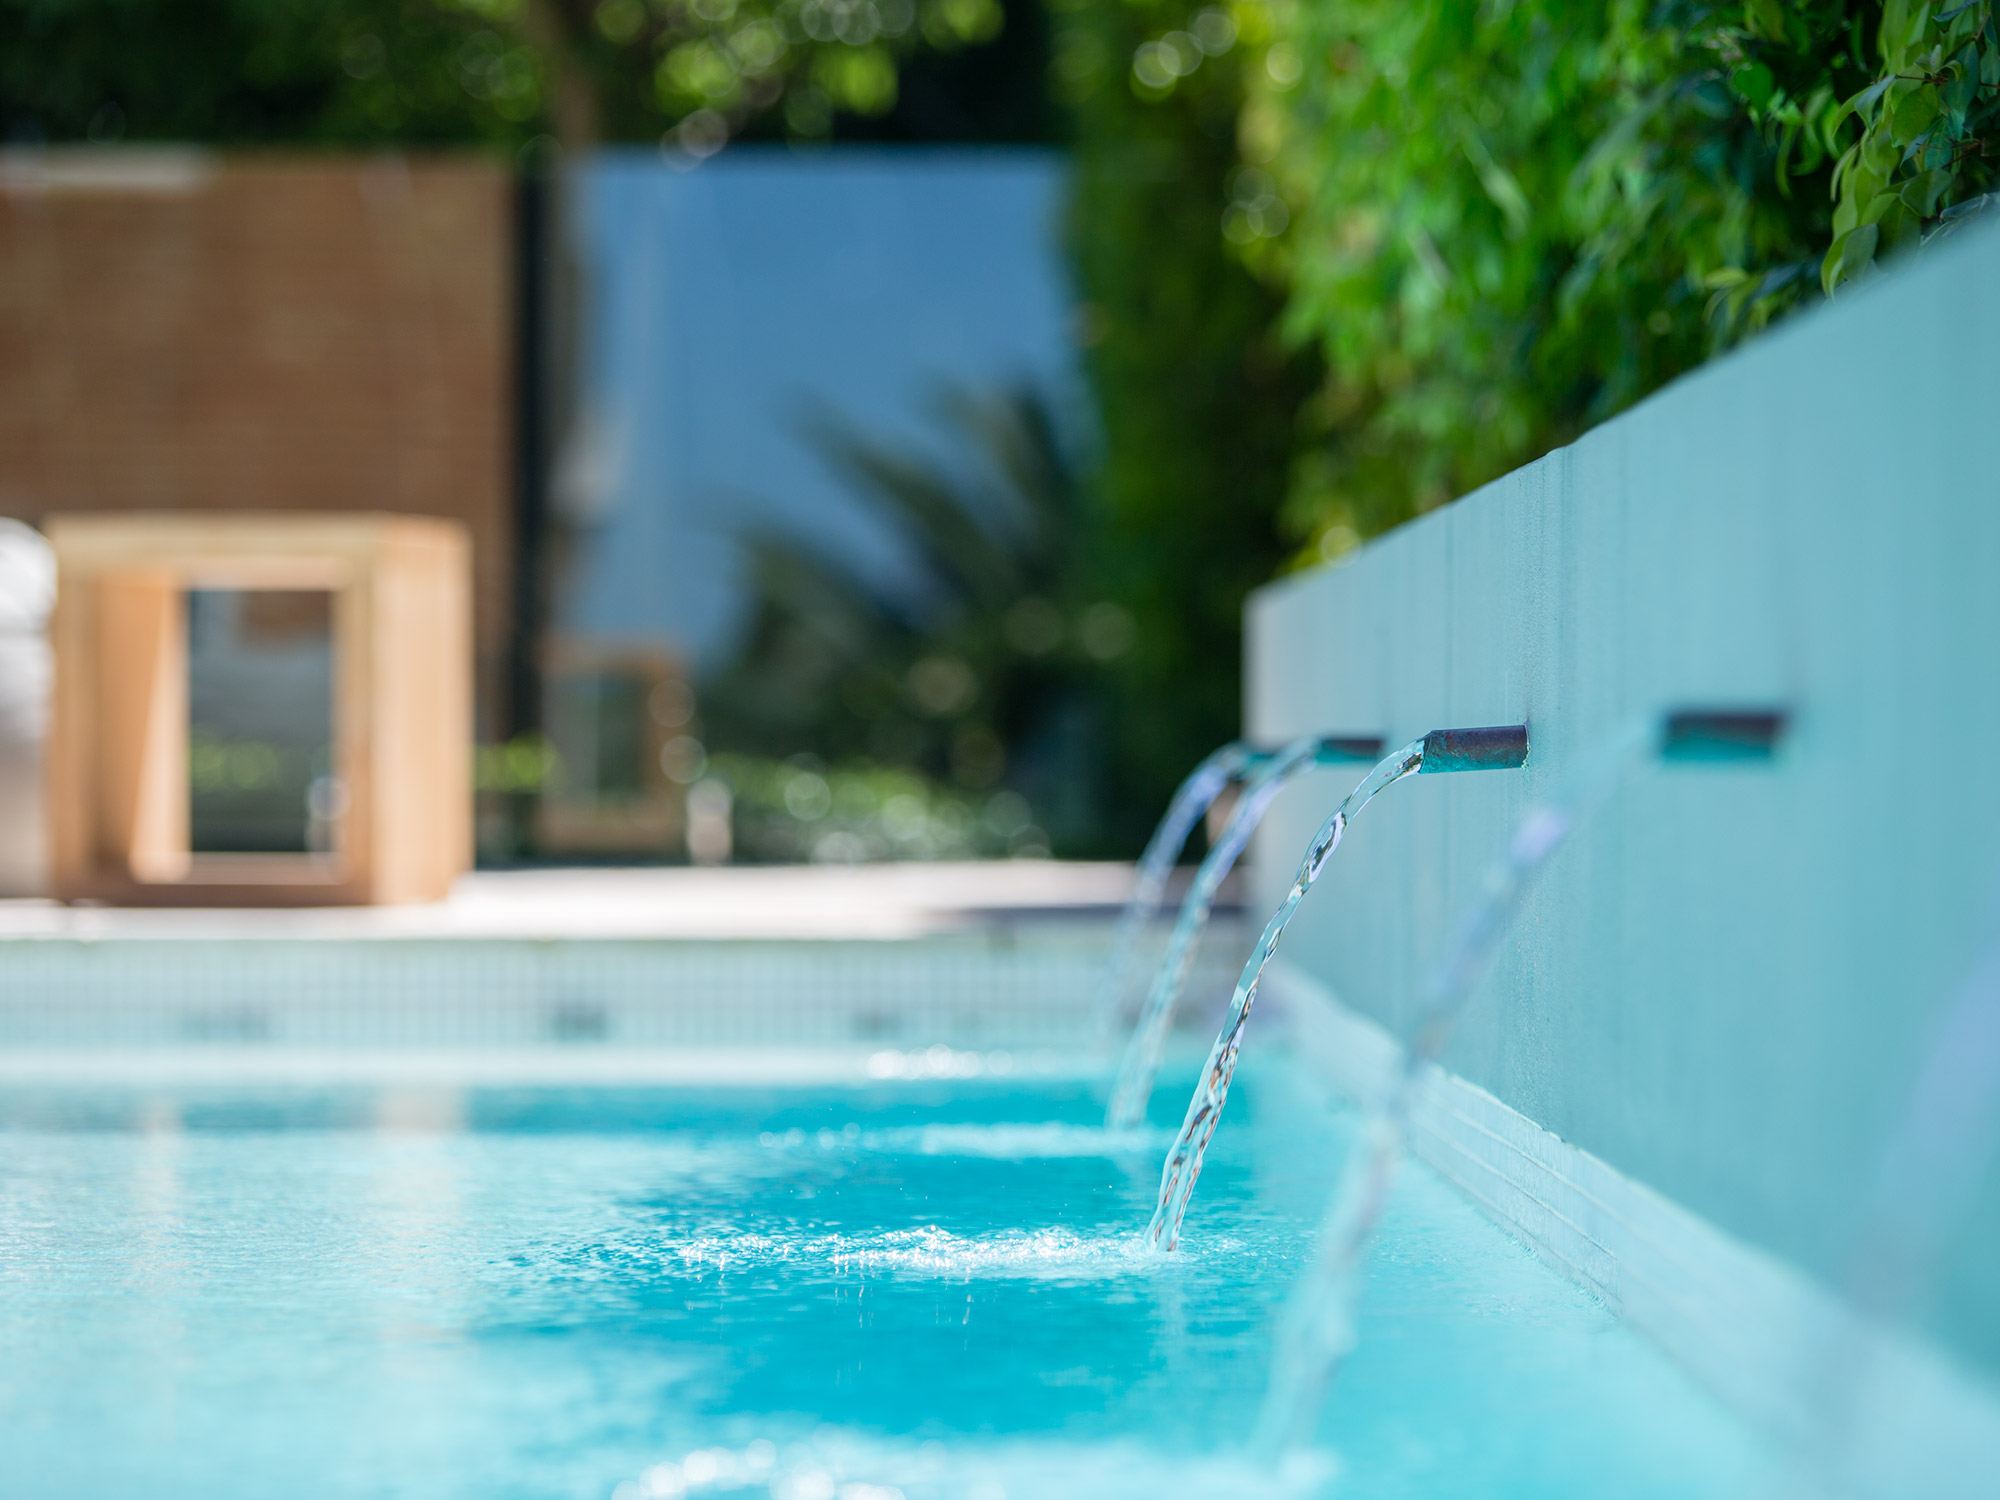 New trends making a splash – The 'smart' pool.